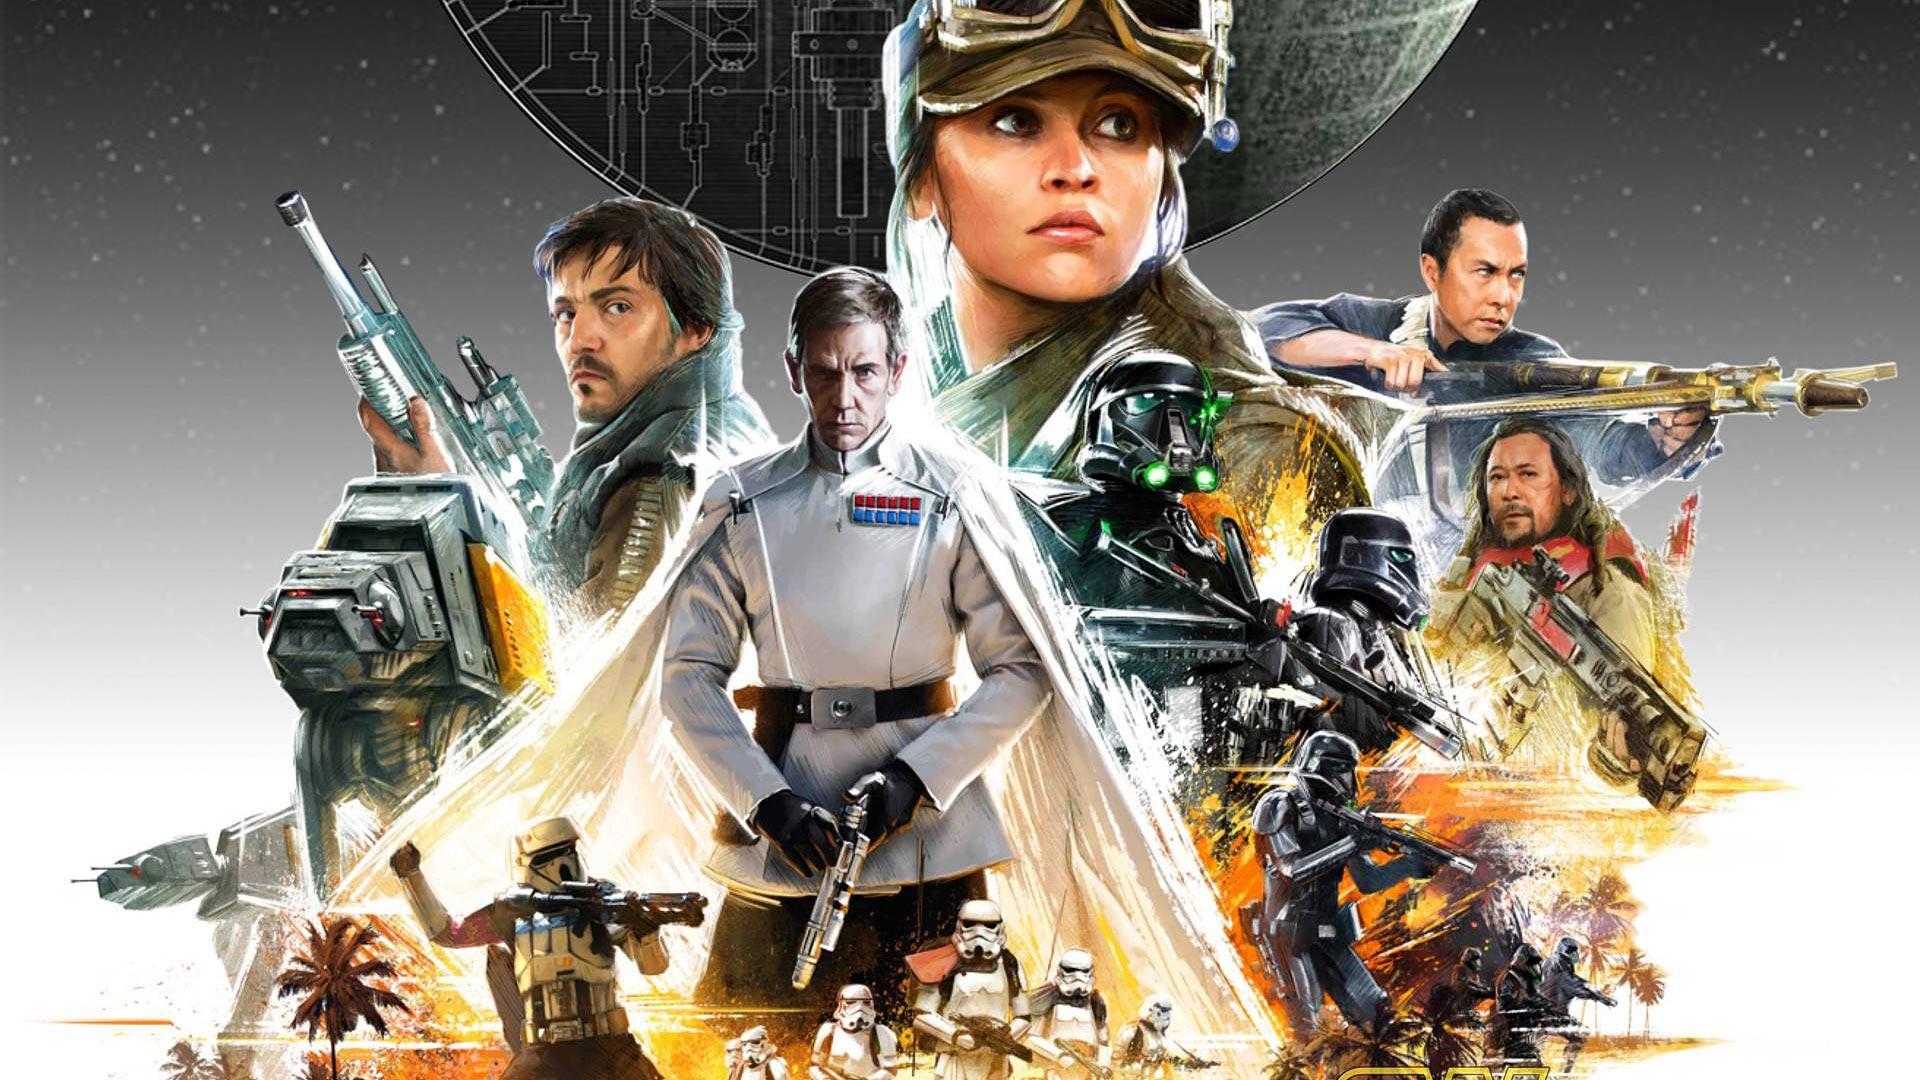 Star Wars Rogue One Wallpaper: Star Wars: Rogue One Theme For Windows 10